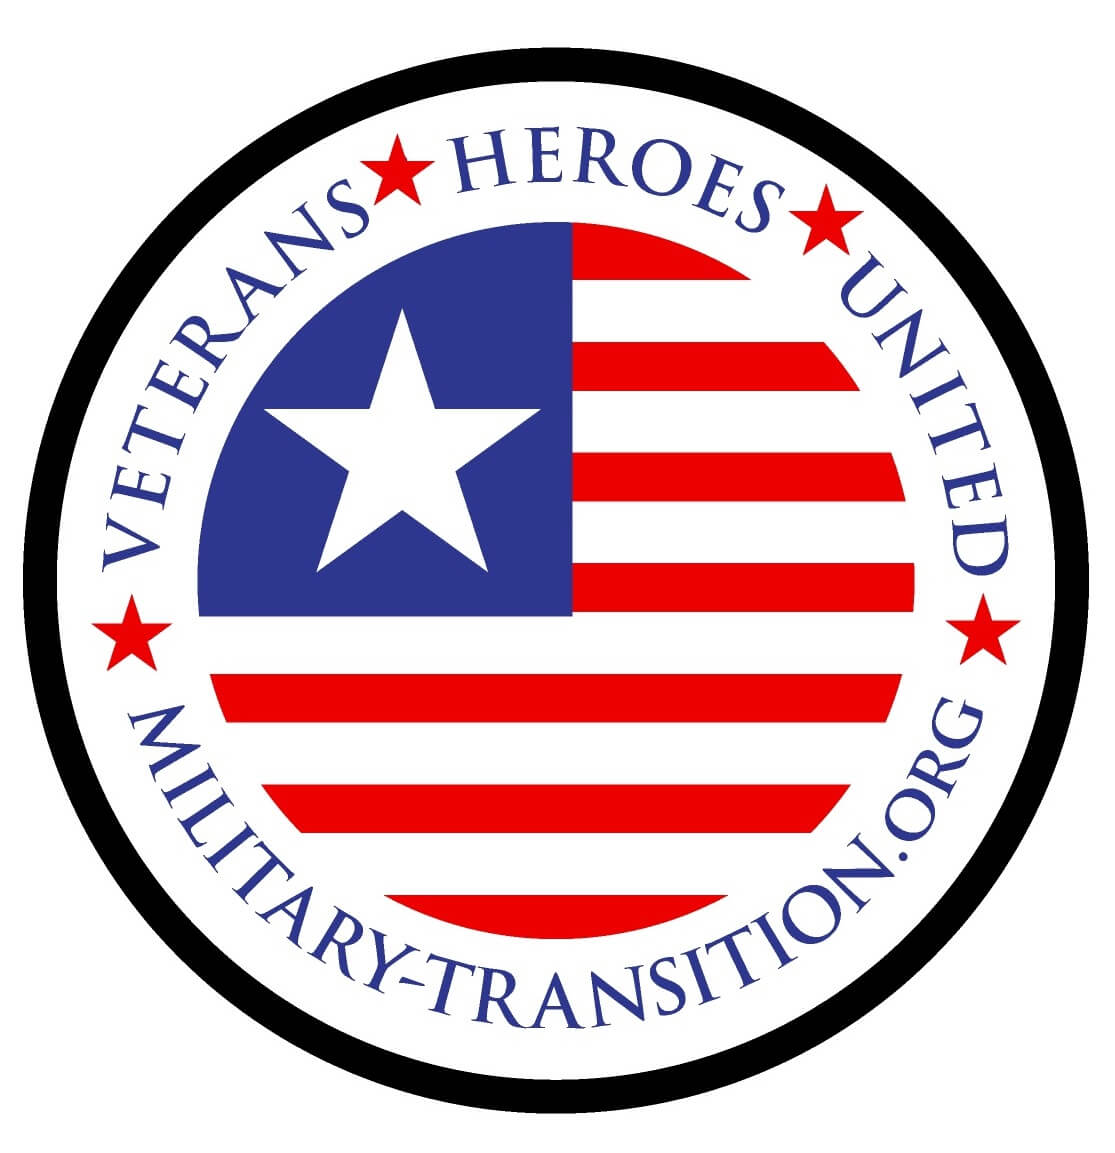 MilitaryTransition.org